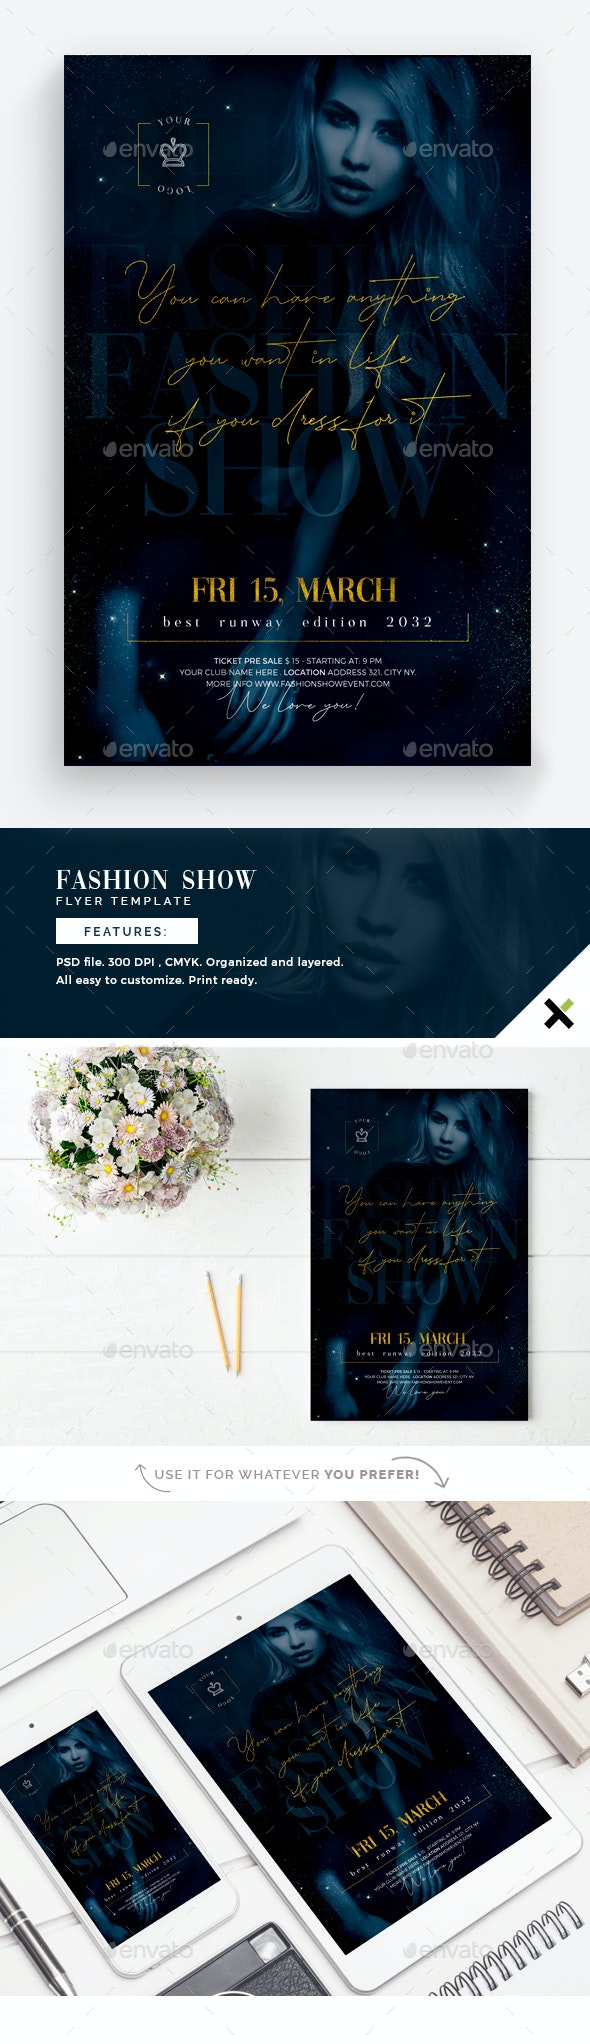 Fashion Show Flyer Template - Flyers Print Templates